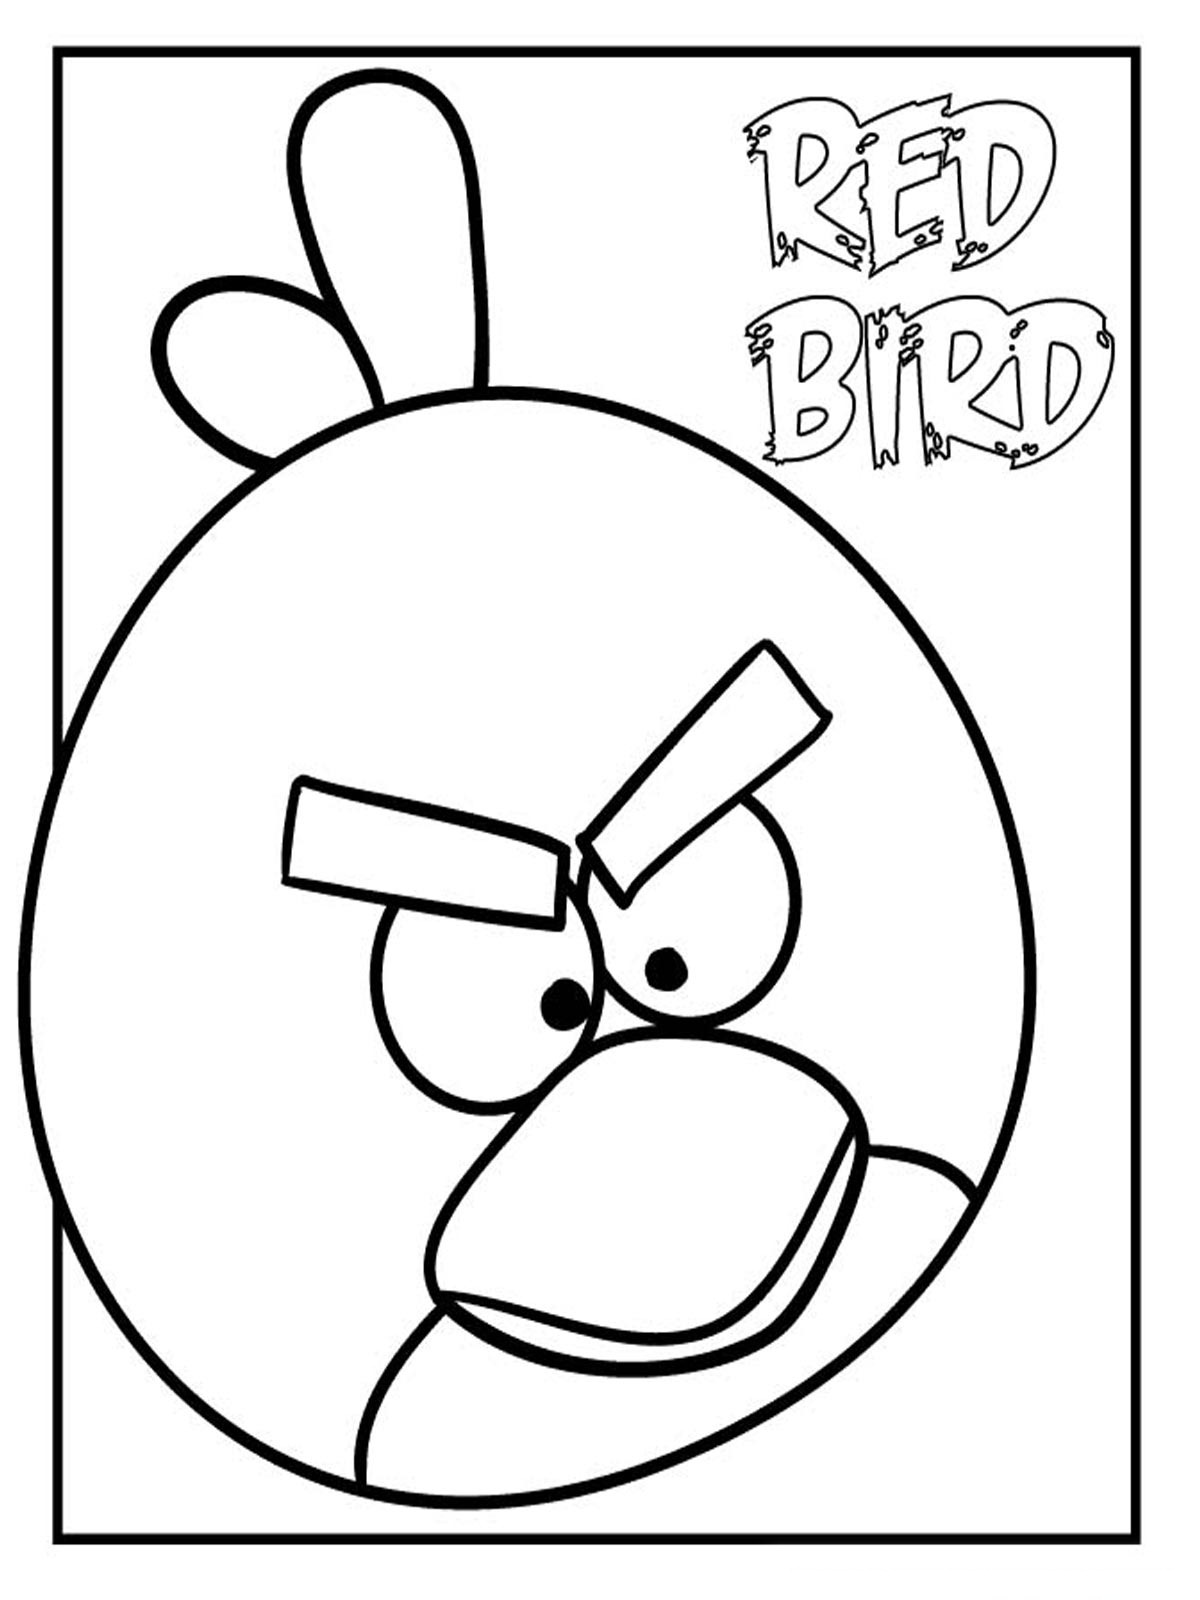 coloring pages angry birds printable - photo#17